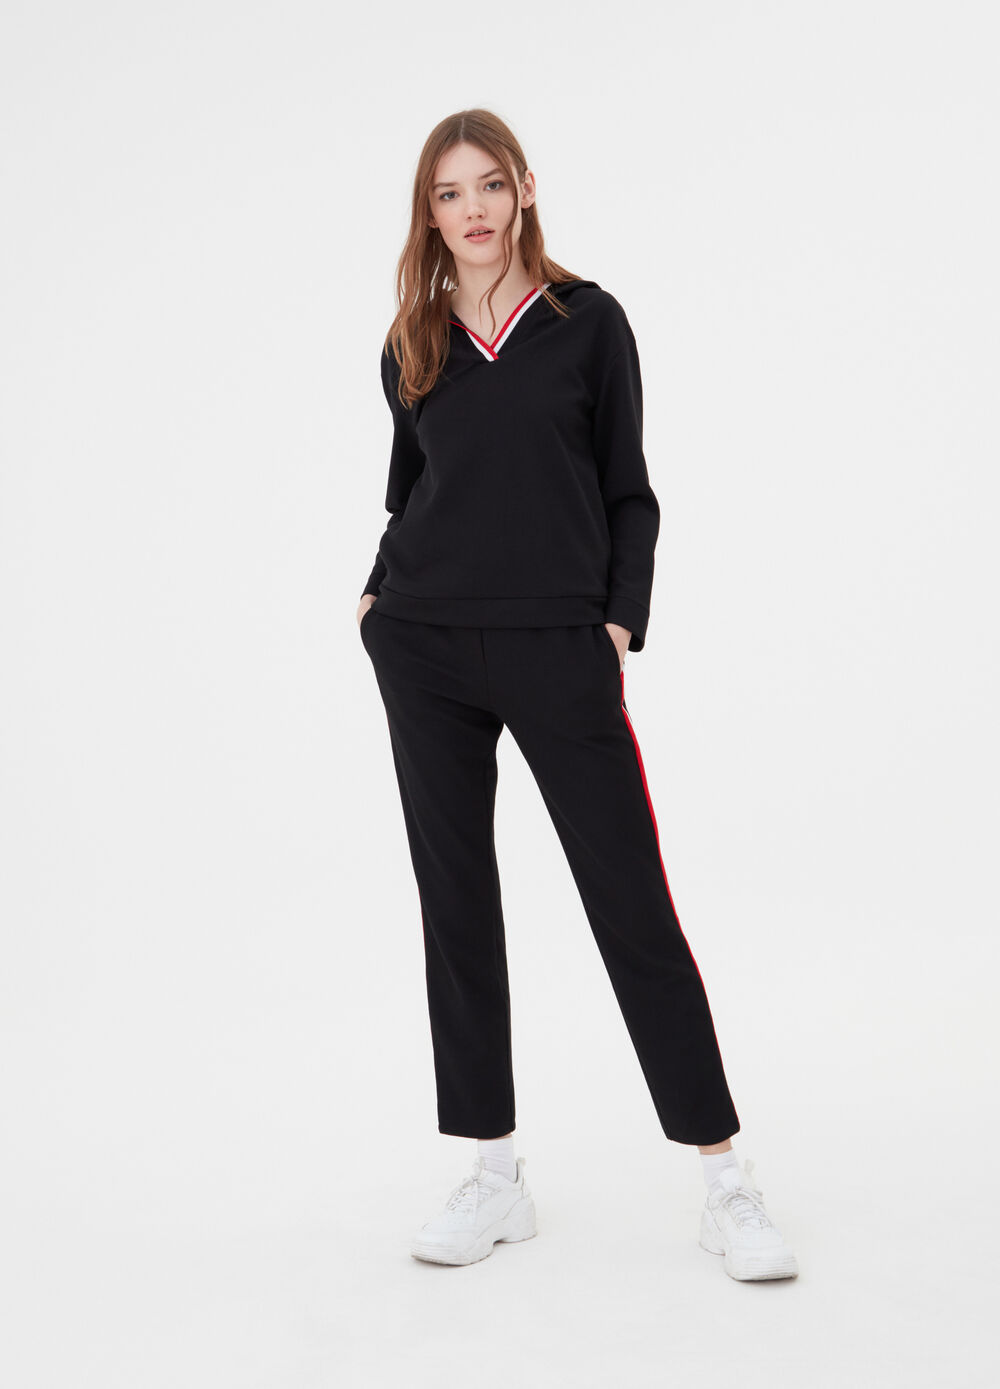 Trousers with contrasting bands on the sides